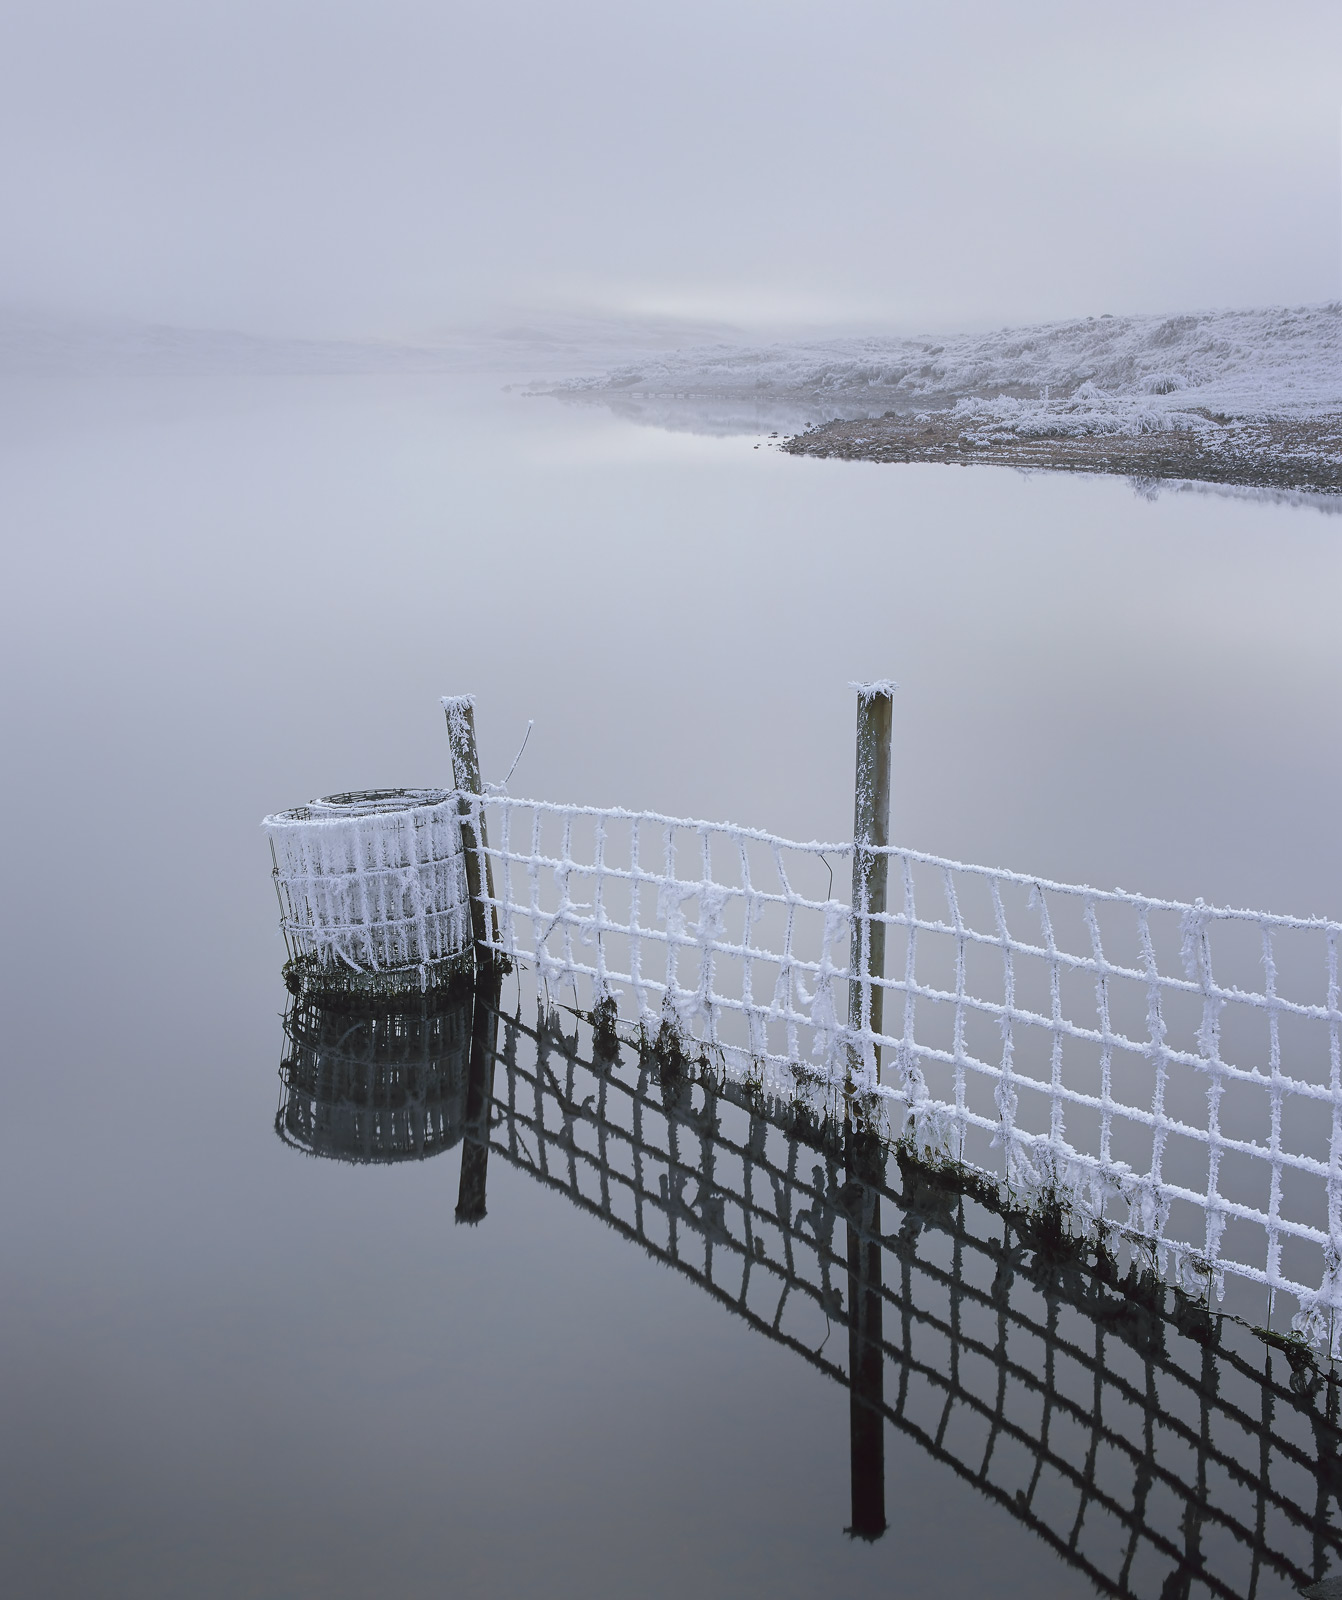 Extreme low temperatures from freezing mist clearing over Loch A Chroisg near Achnasheen began to slowly dissipate leaving a...